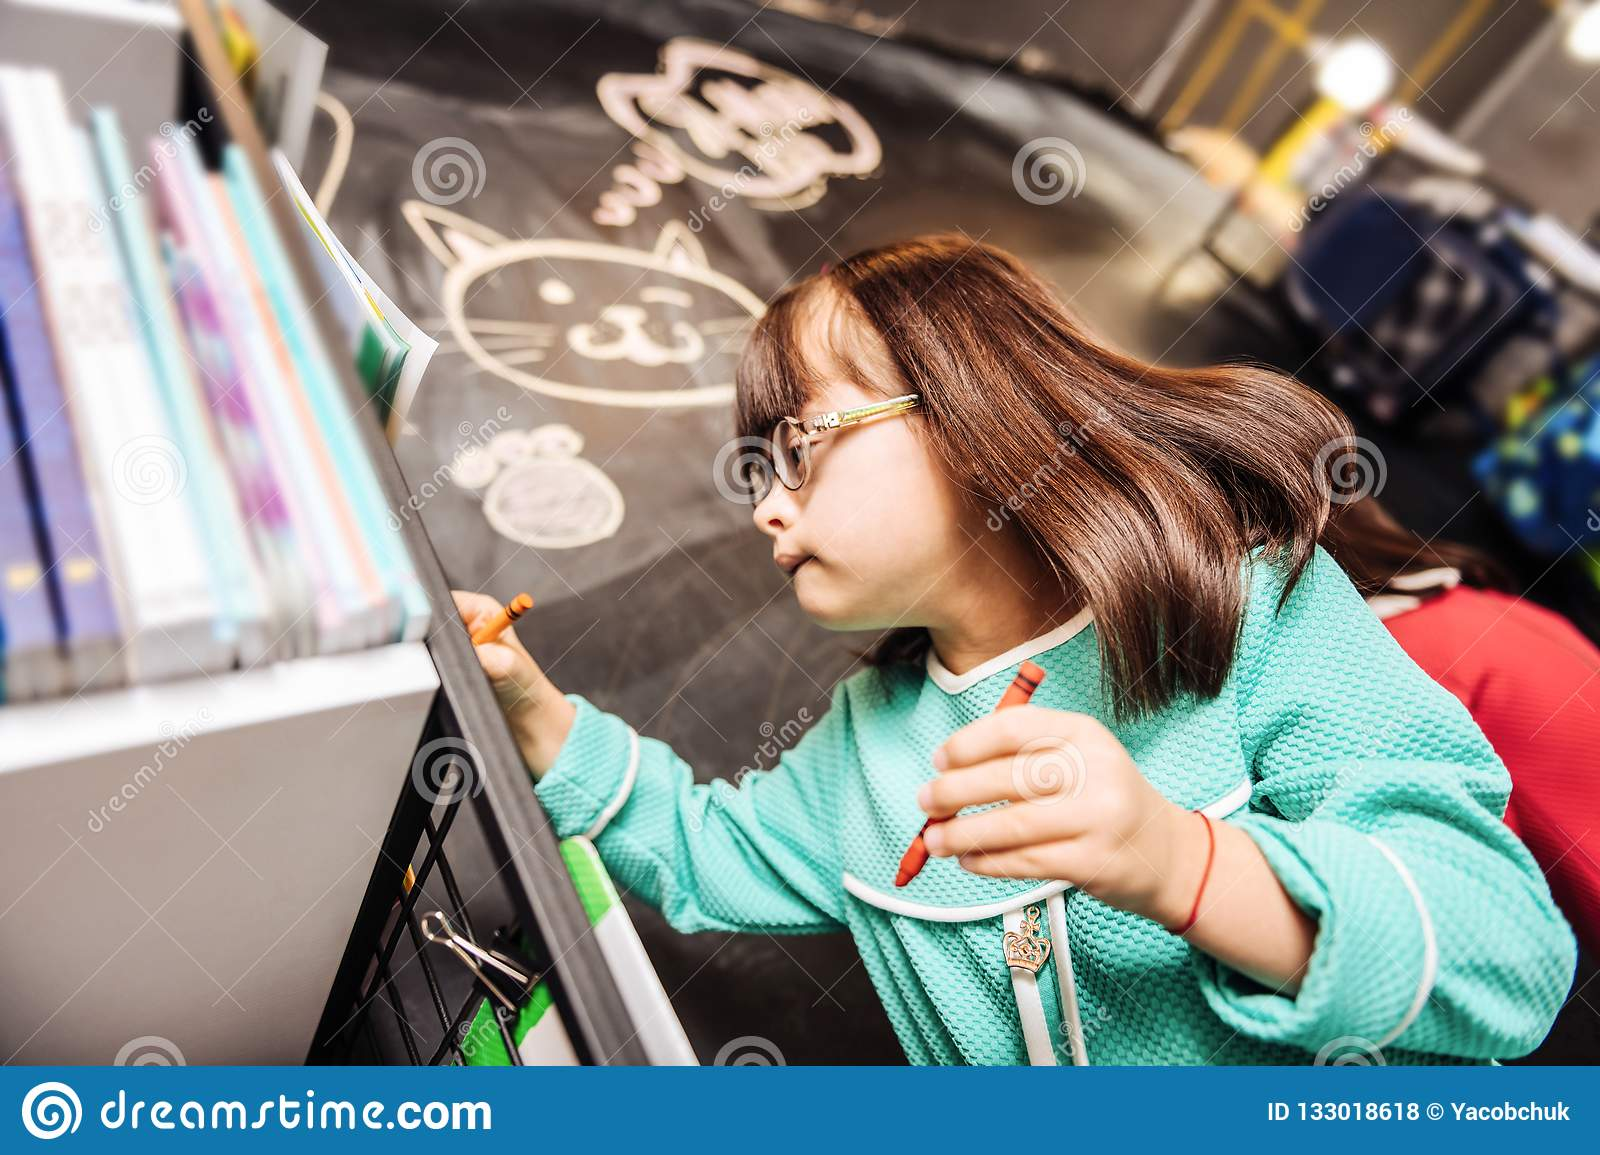 Cute pleasant girl with Down syndrome drawing cute cat on blackboard